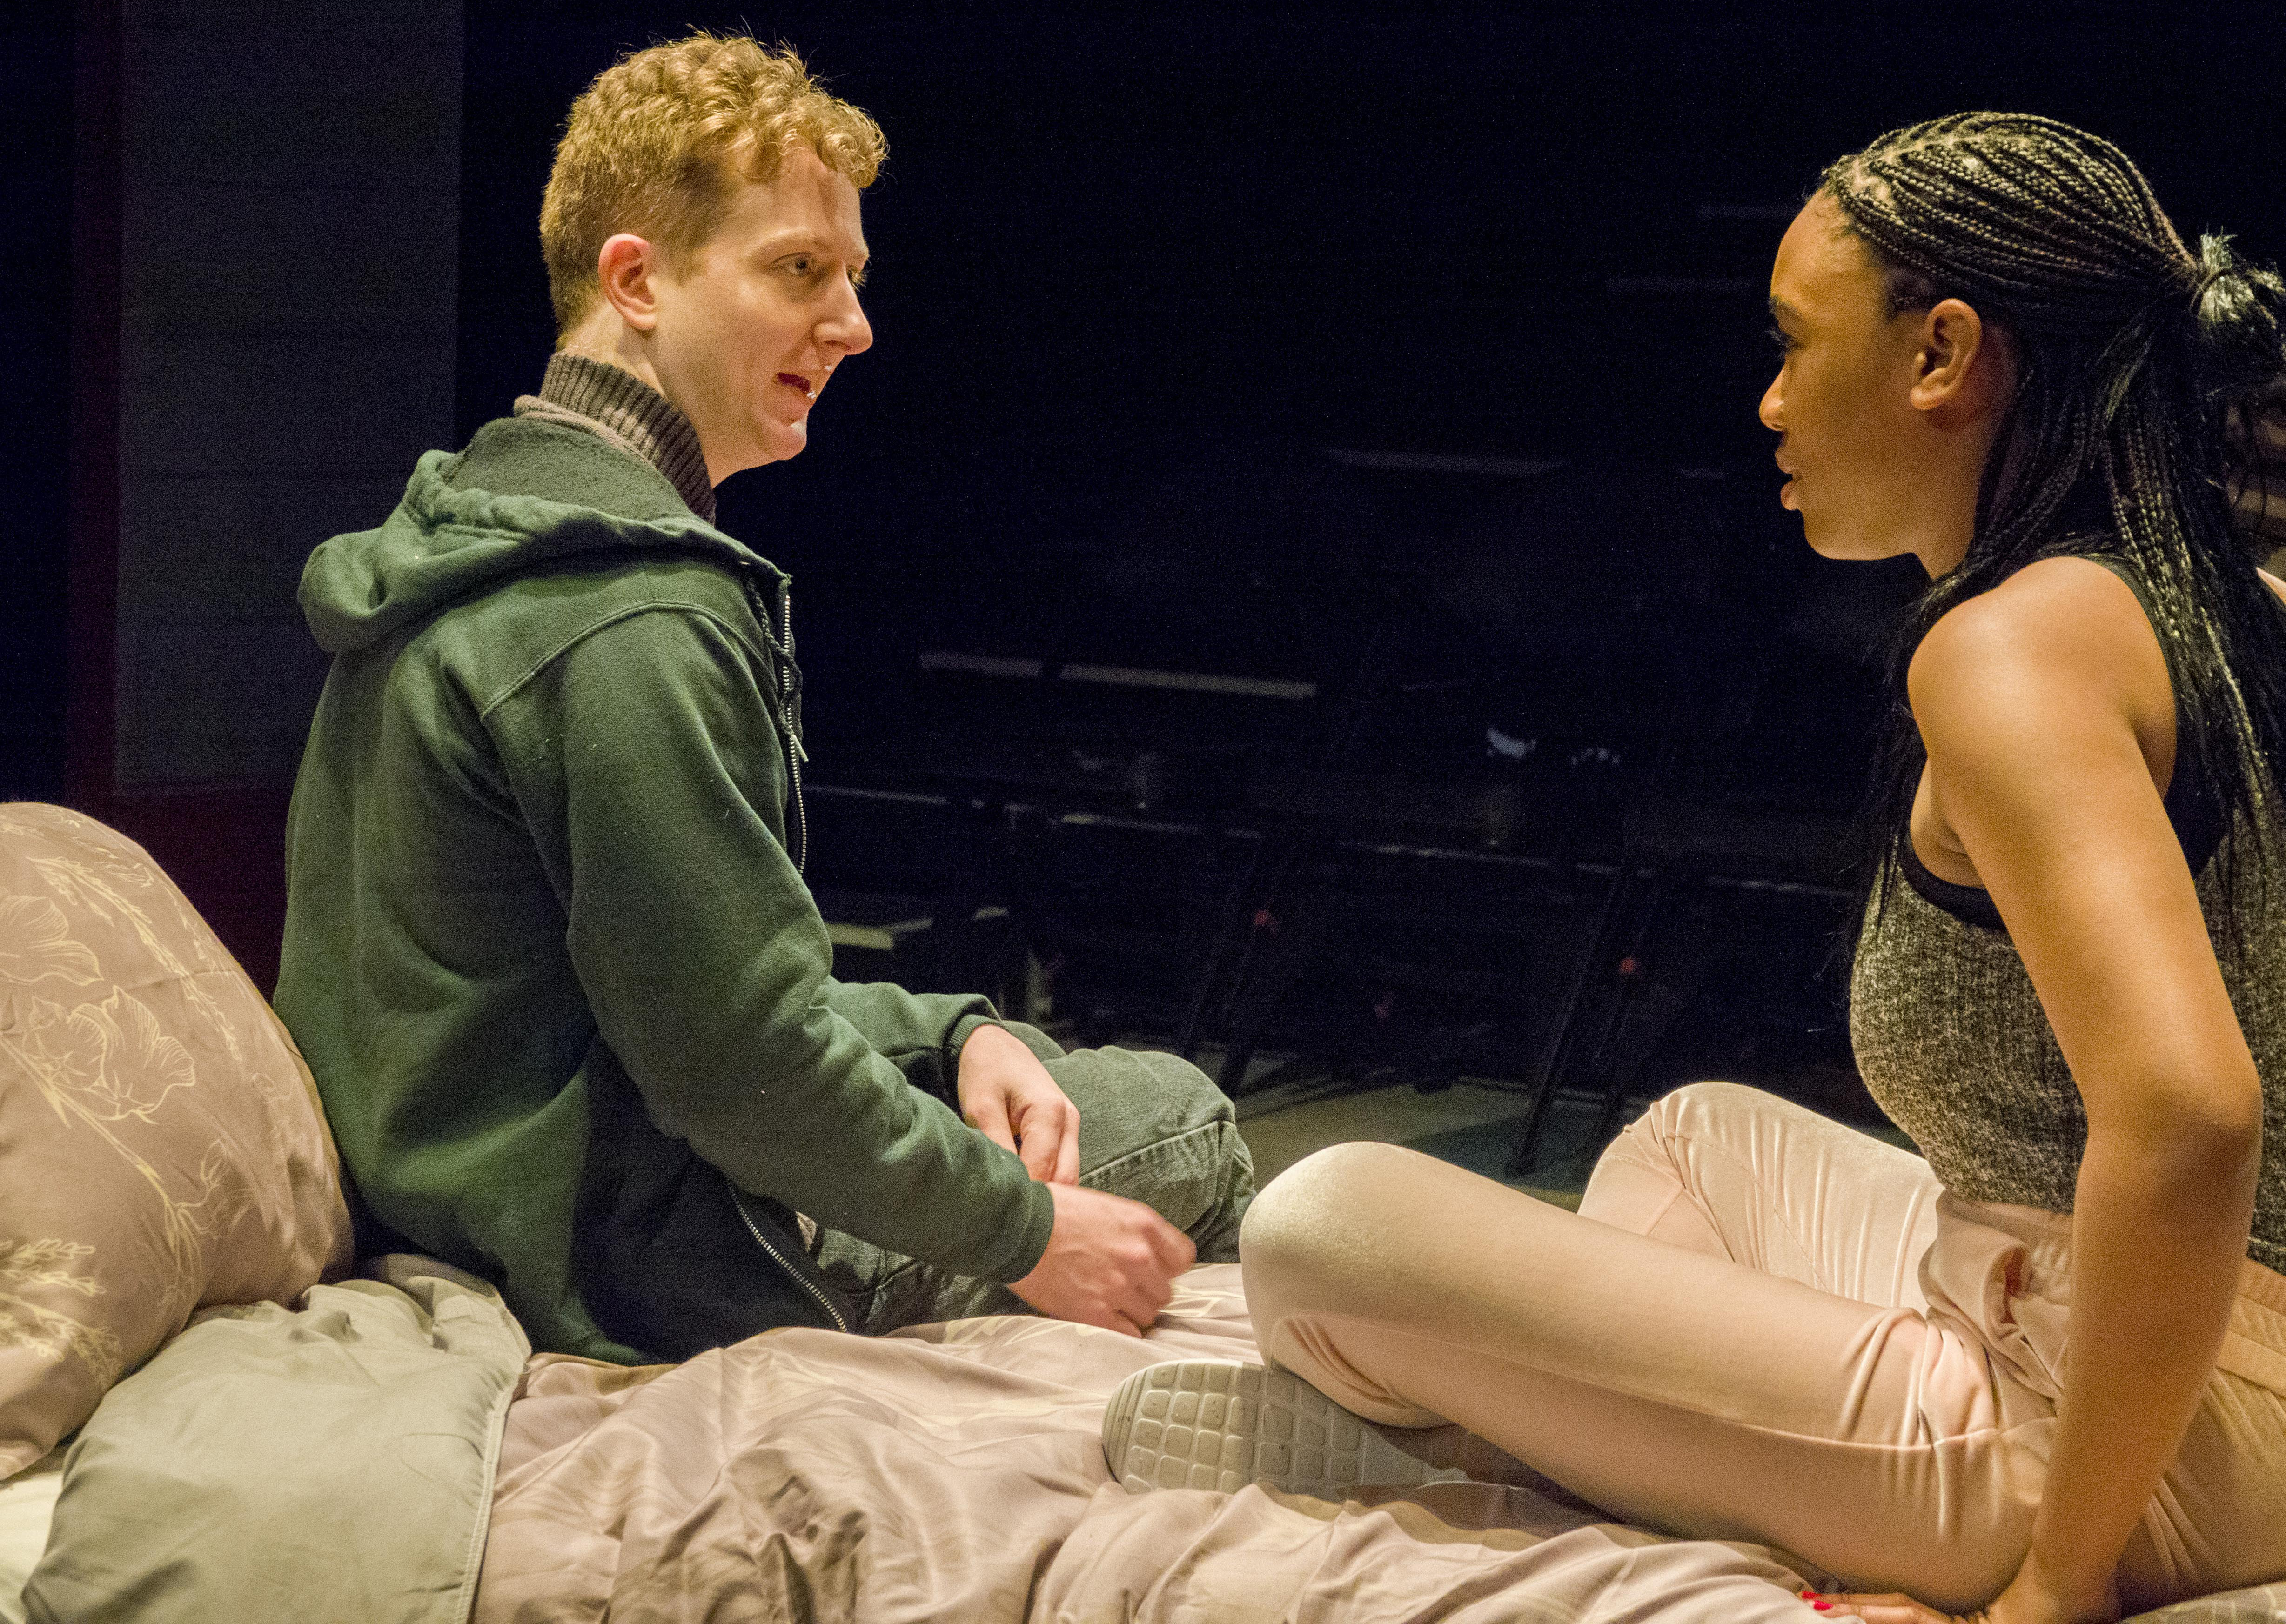 """MacGregor Arney plays Richard and Courtney Rikki Green plays Anne in """"Teenage Dick,"""" Mike Lew's new play that finds theater's most famous disabled character, Shakespeare's Richard III, scheming his way through the brutal, no-holds barred world of contemporary high school."""